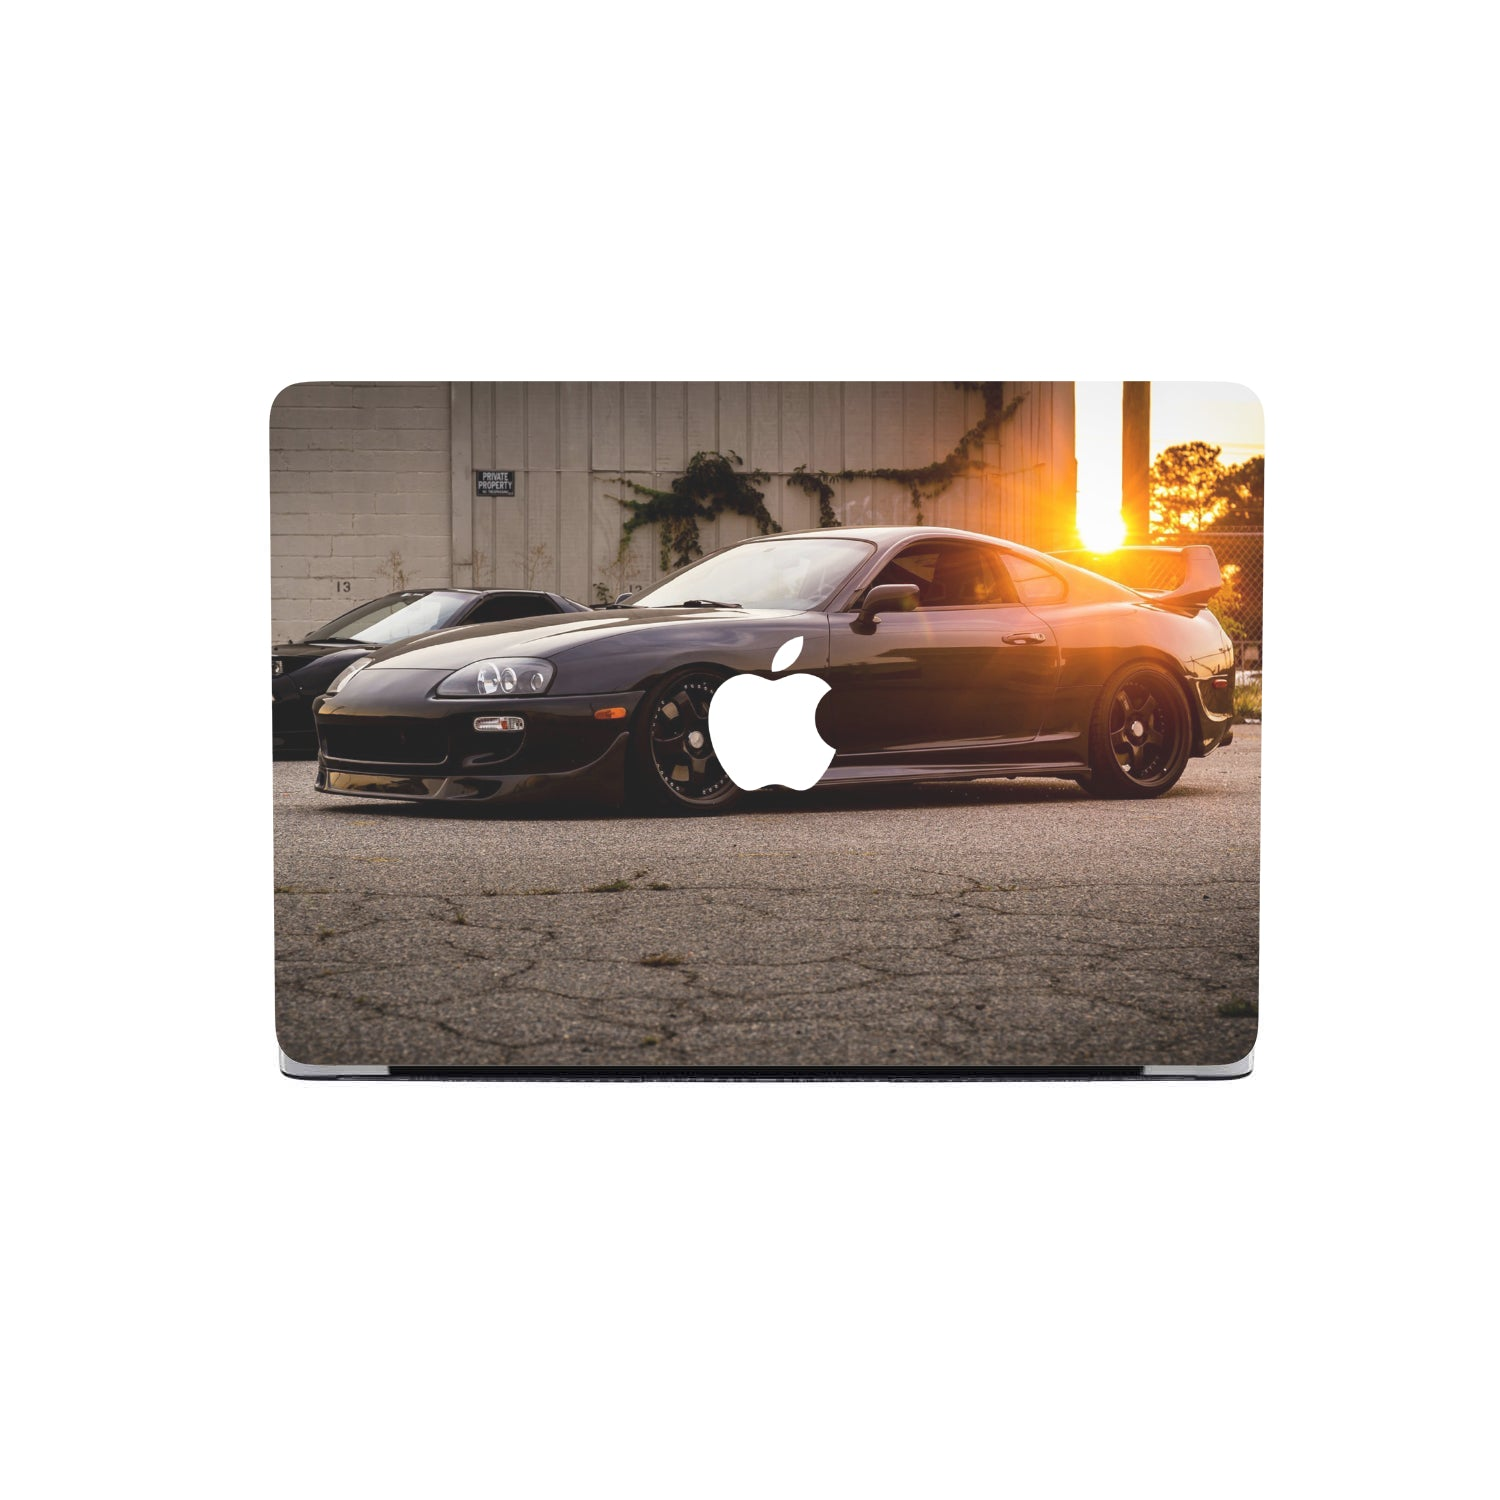 Black on Black Supra MacBook Cover